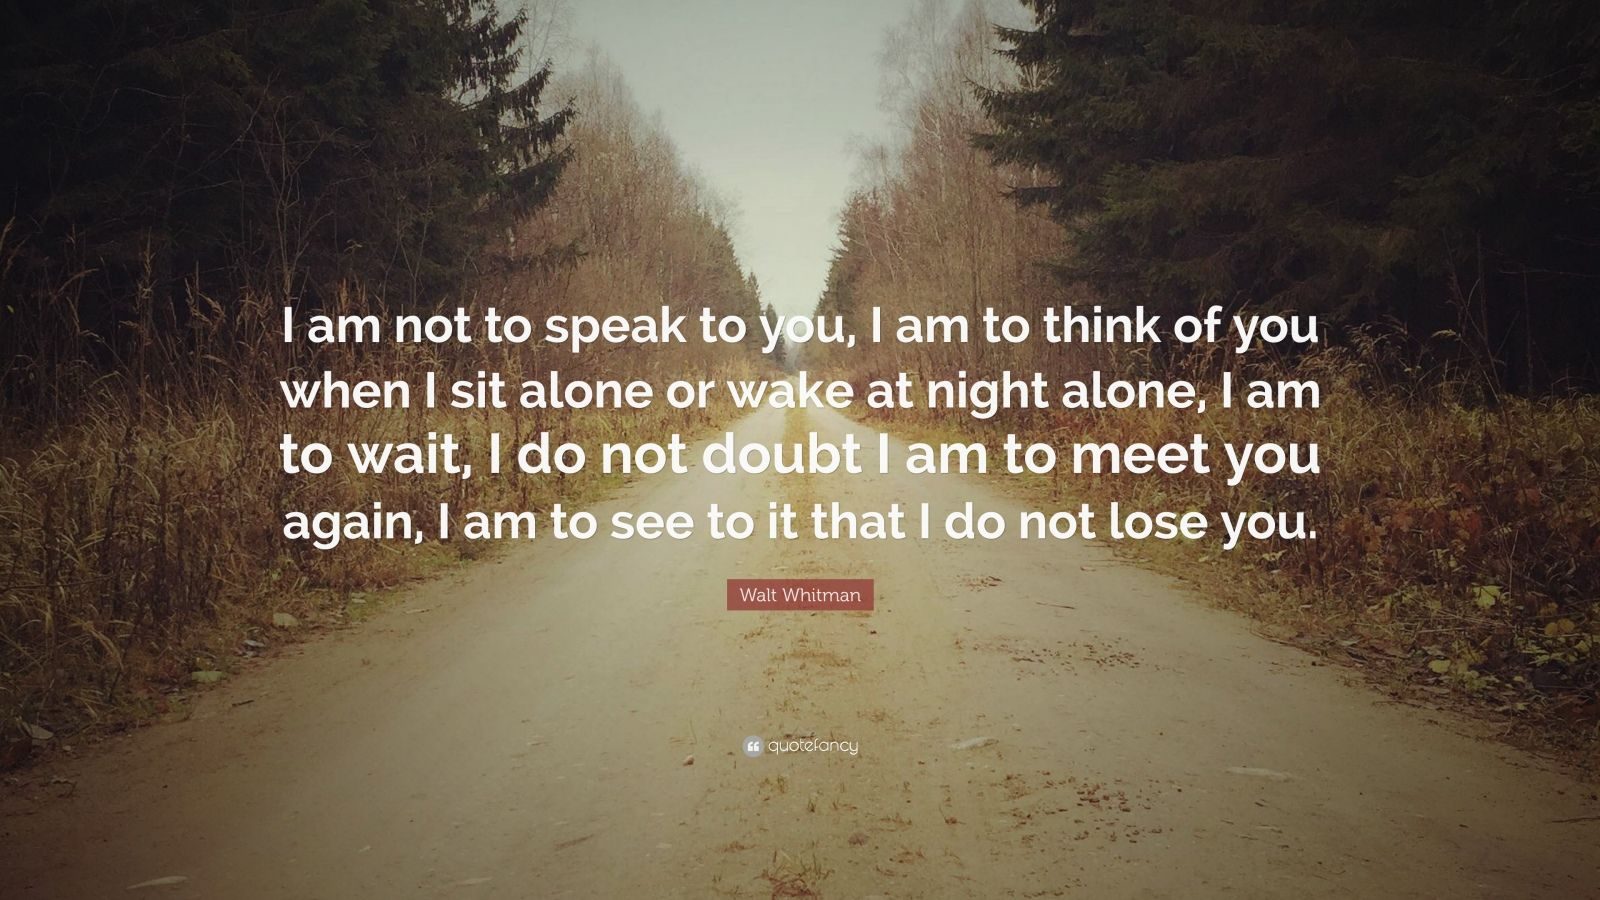 """Walt Whitman Quote: """"I am not to speak to you, I am to think of you when I sit alone or wake at night alone, I am to wait, I do not doubt I am to meet you again, I am to see to it that I do not lose you."""""""